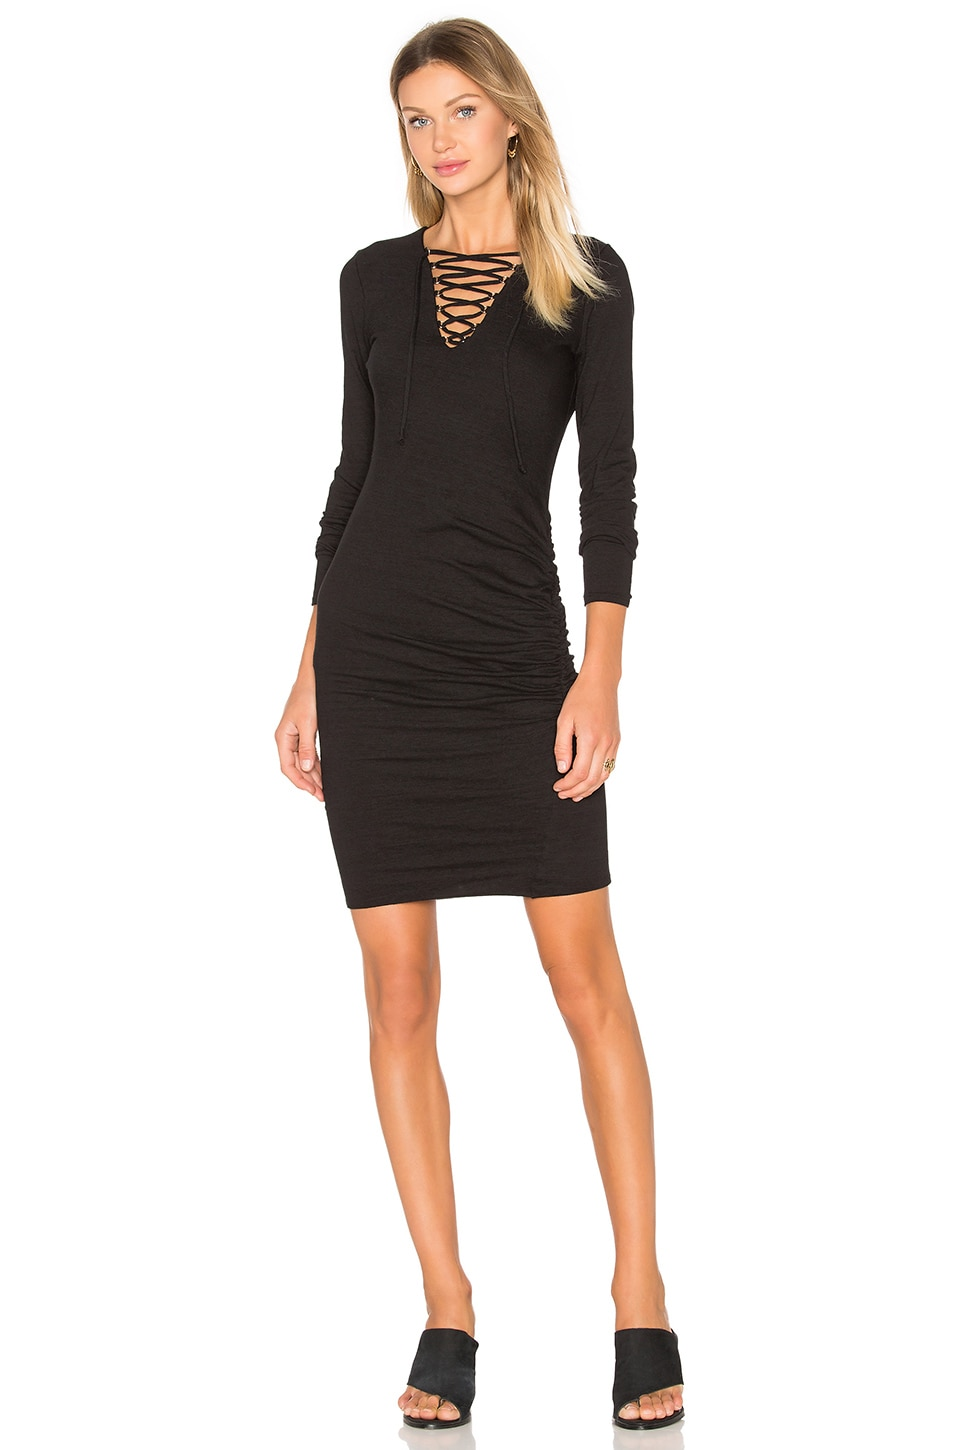 Lace Up Ruched Dress by Pam & Gela